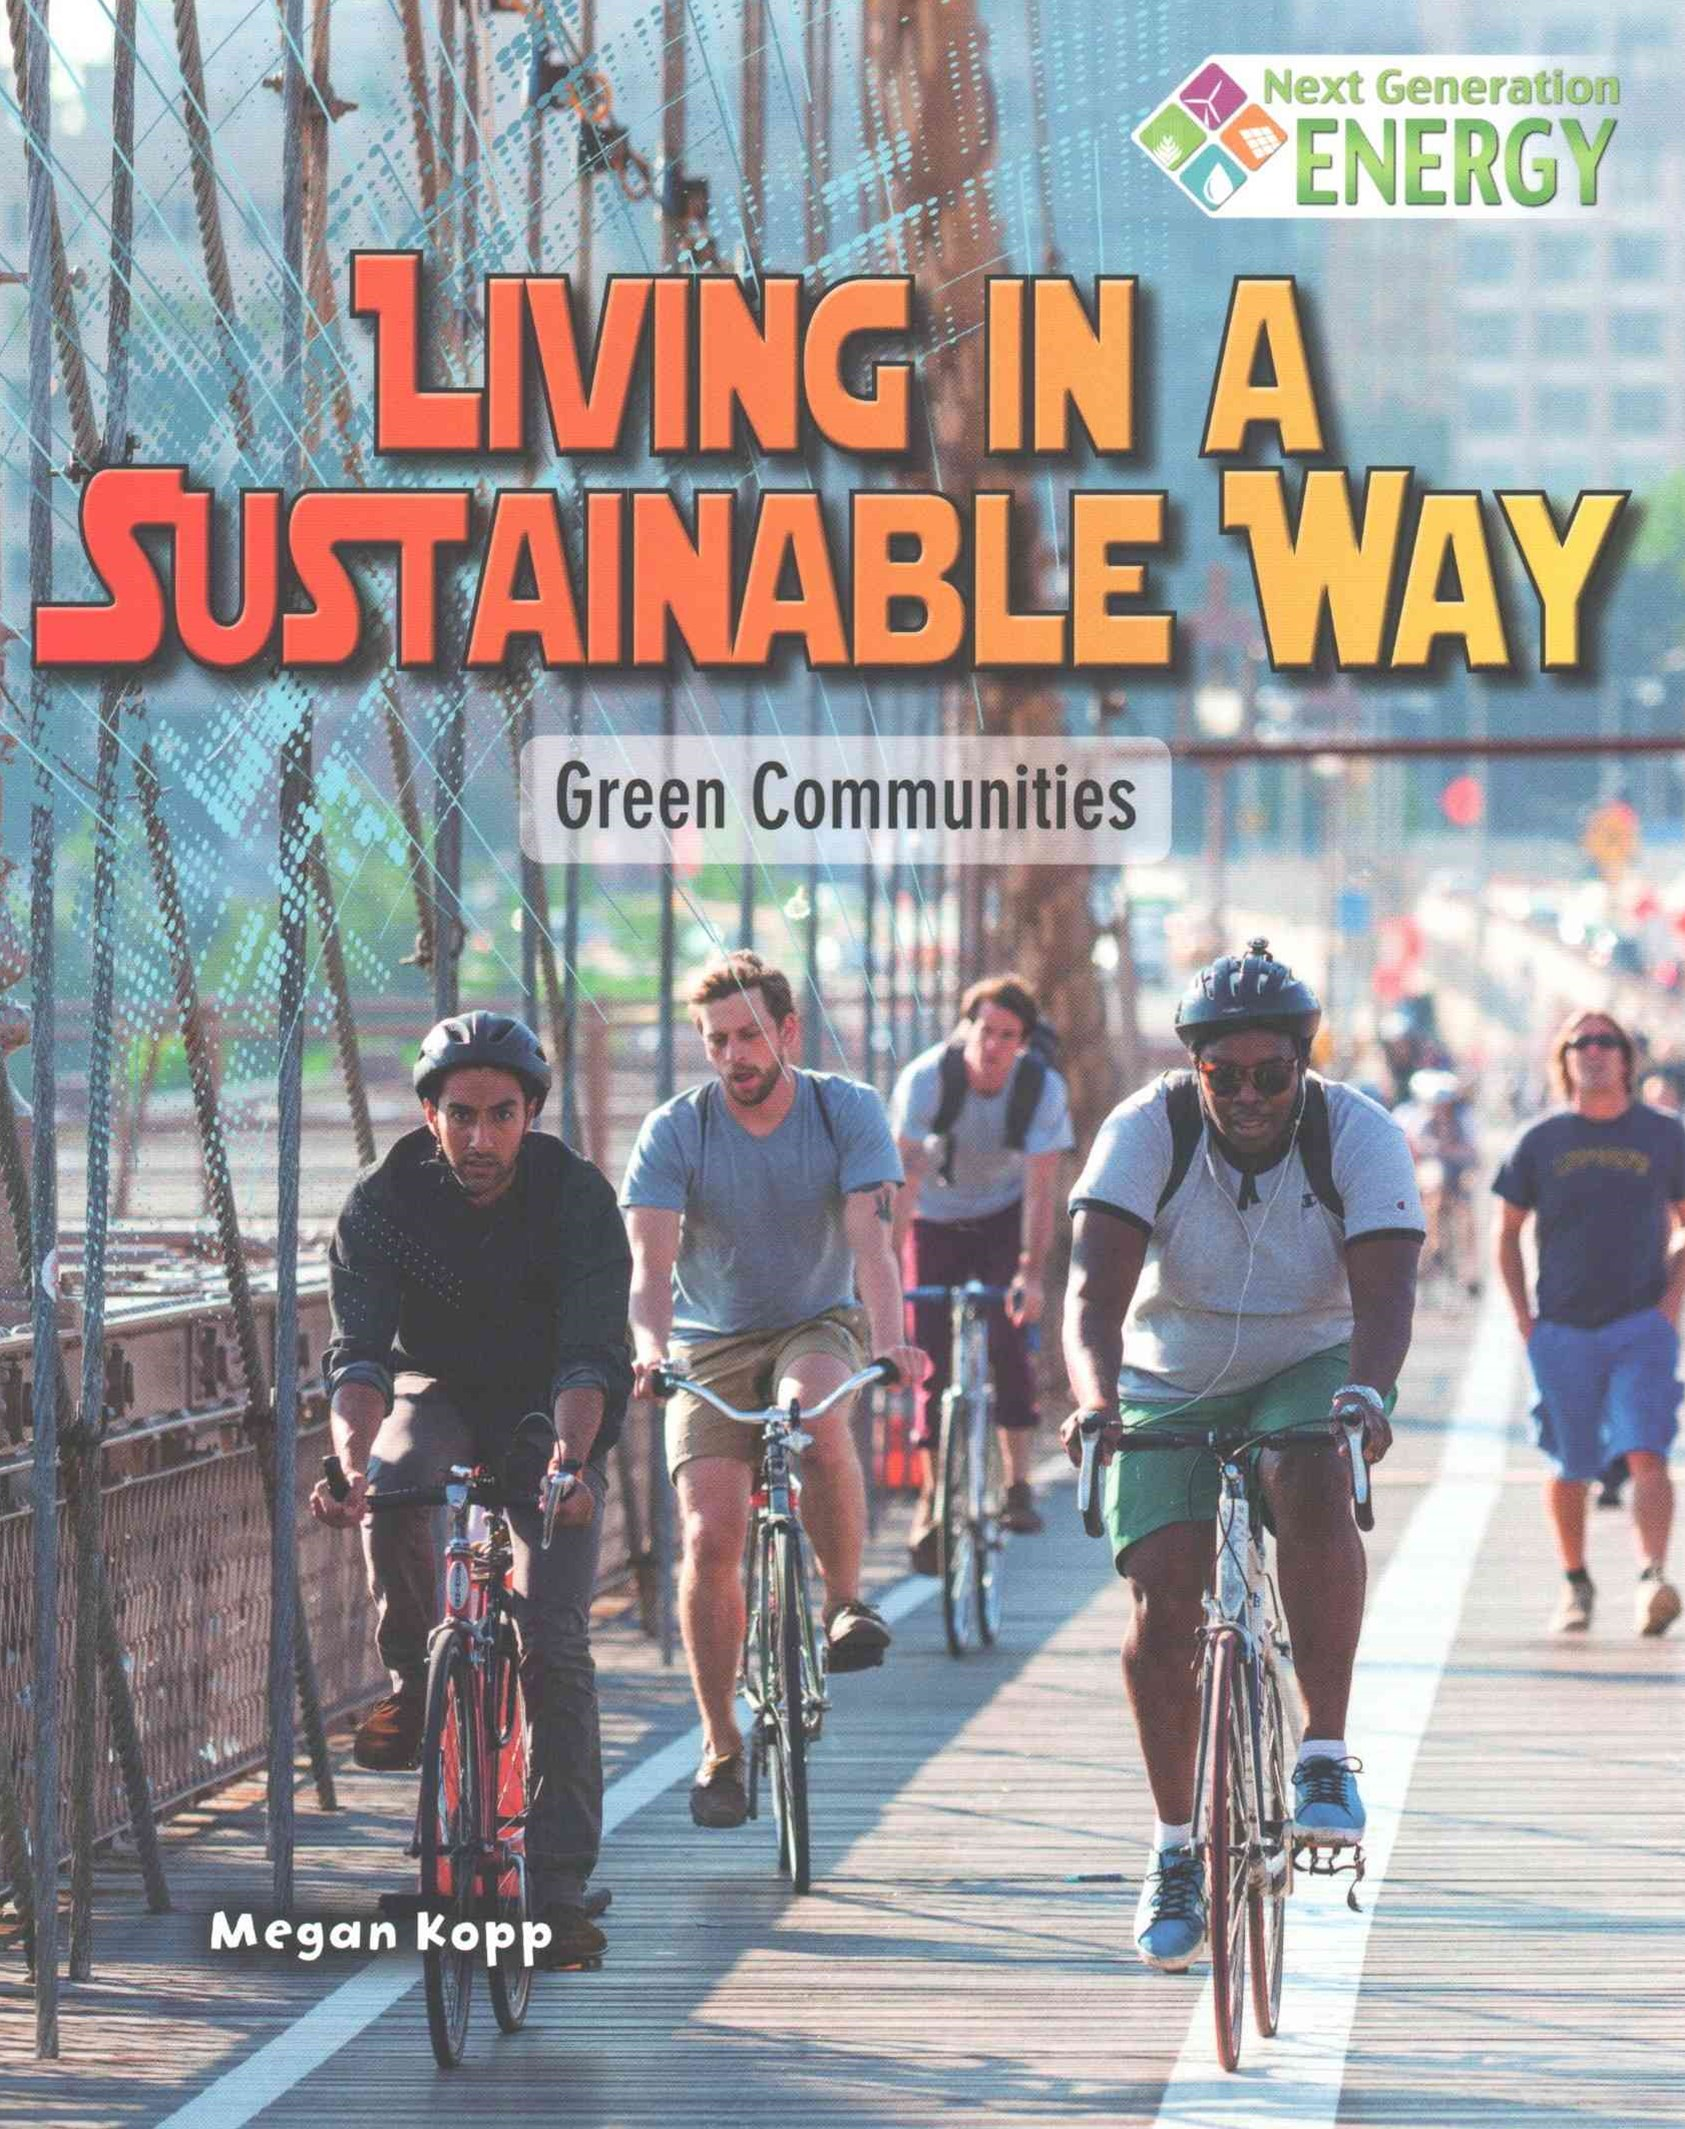 Living in a Sustainable Way - Green Communities - Next Generation Energy